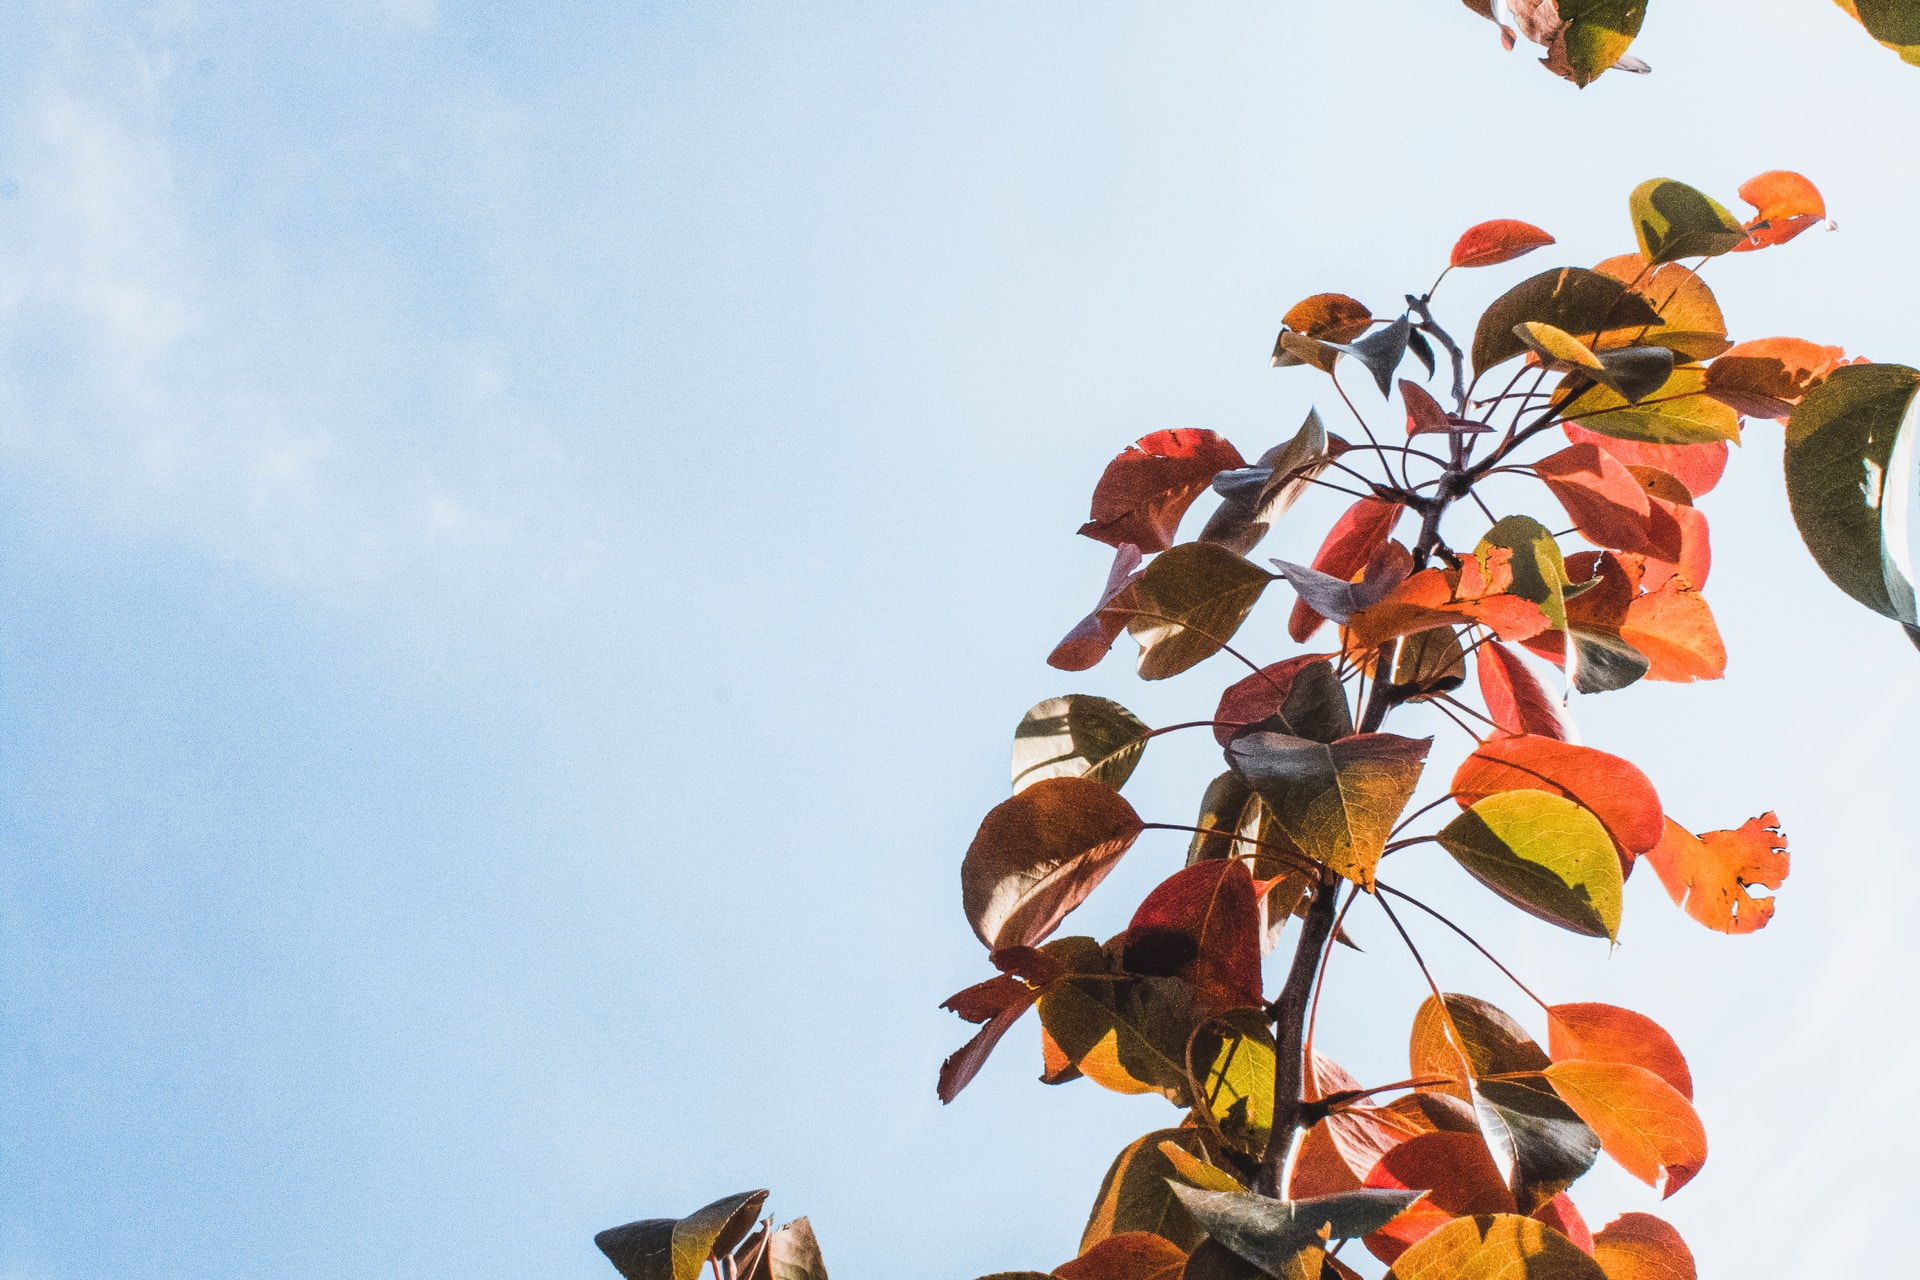 red and yellow leaves on tree branch under white clouds and blue sky during daytime